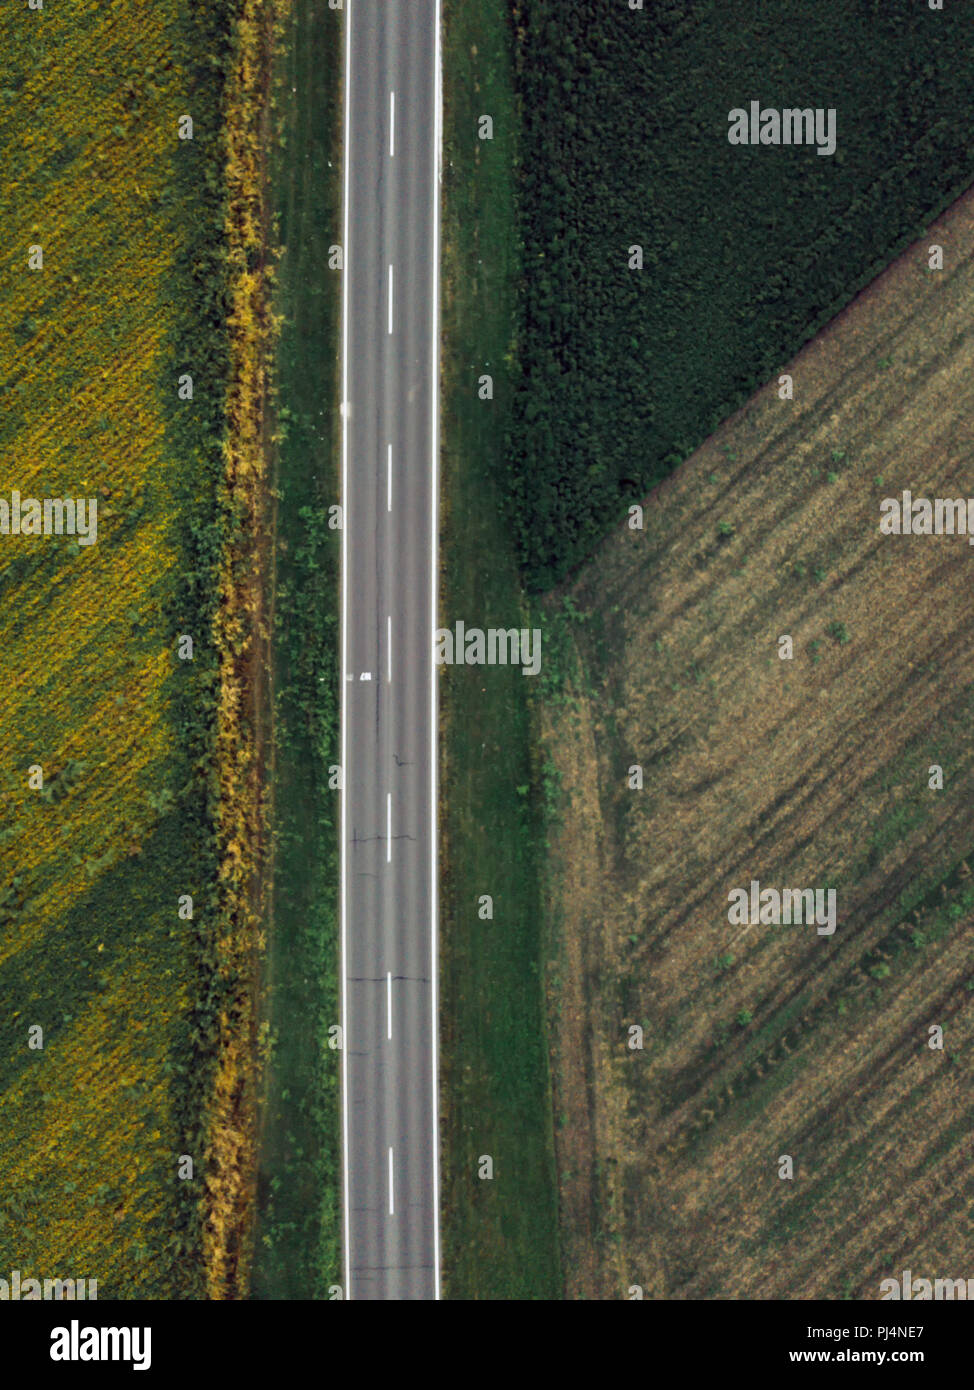 Drone photography of empty road through plain countryside landscape, aerial view of two lane roadway directly from above - Stock Image